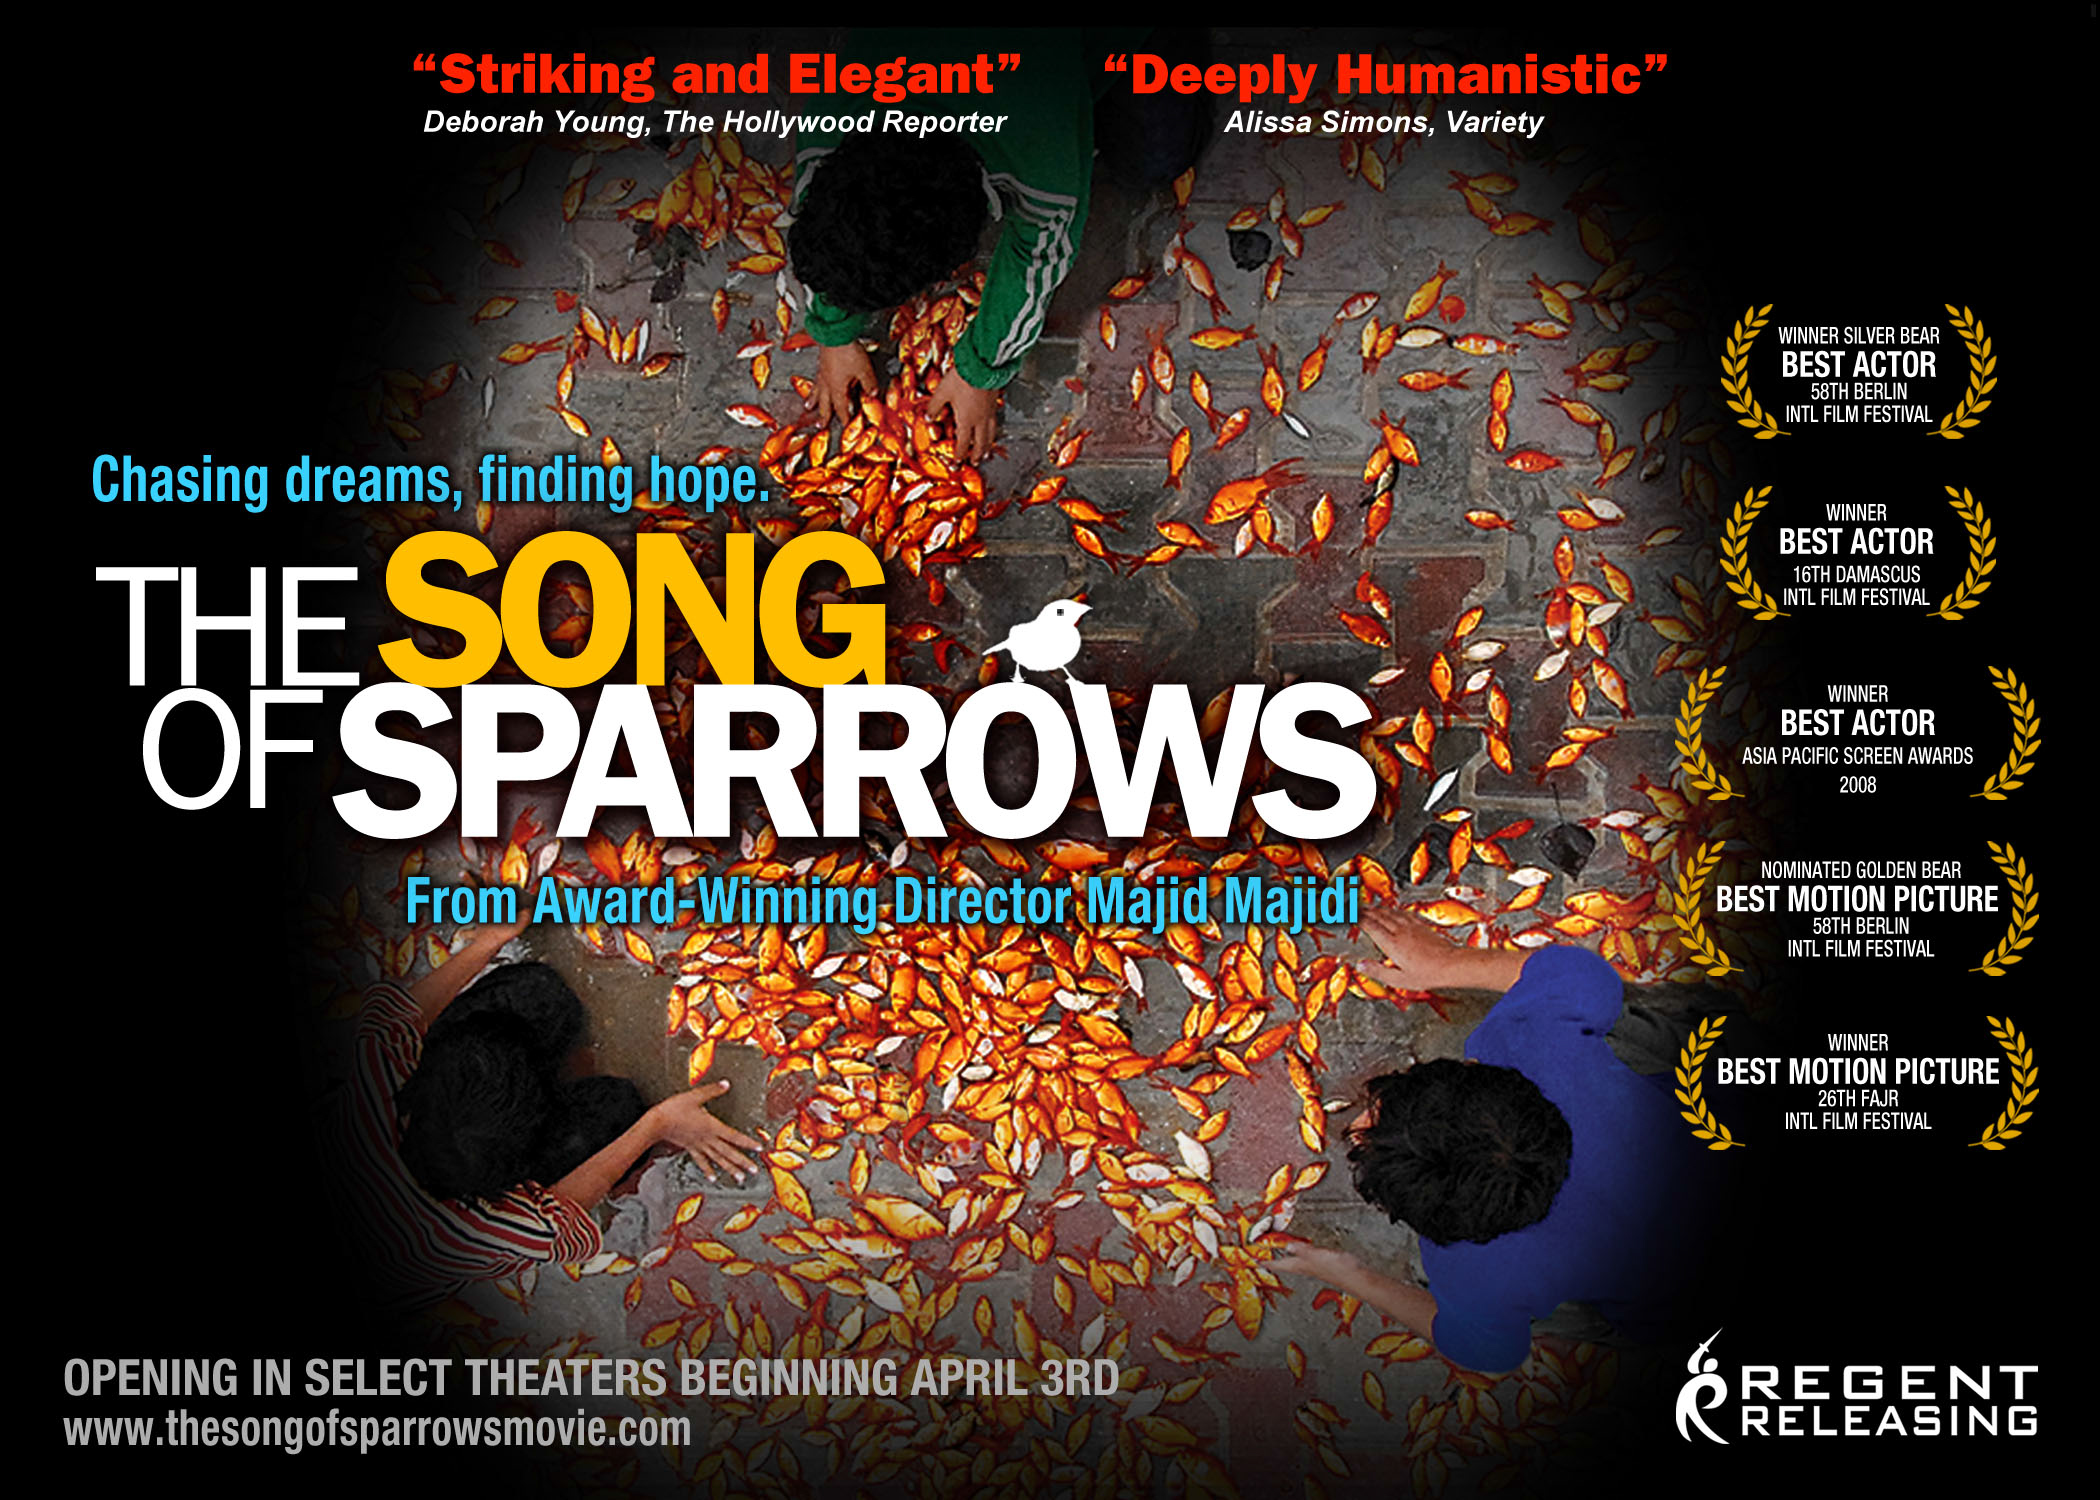 SongOfSparrows